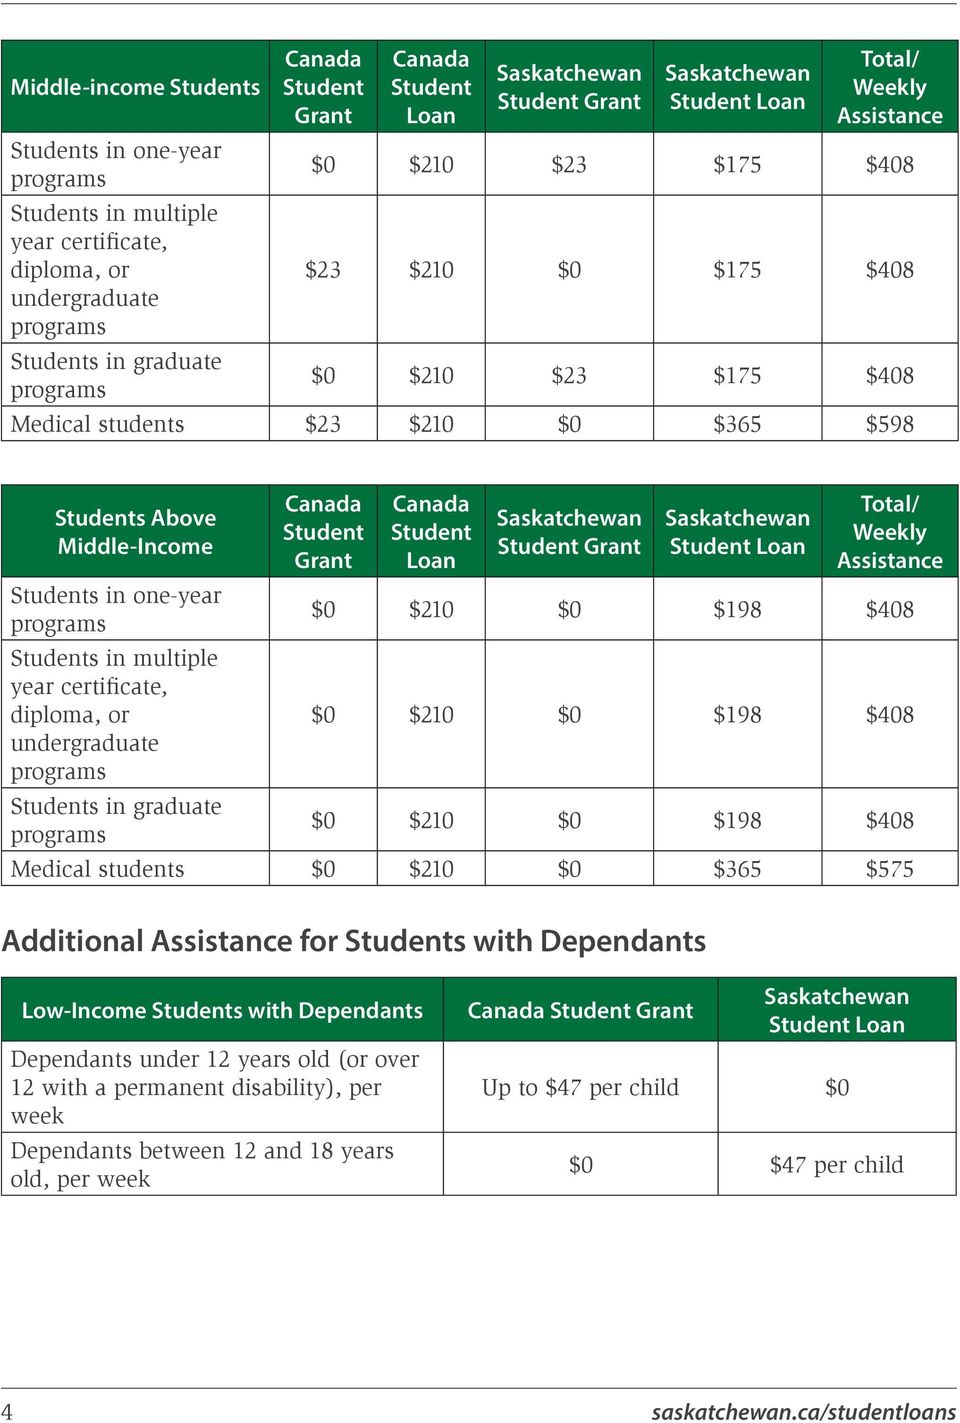 Middle-Income Students in one-year programs Students in multiple year certificate, diploma, or undergraduate programs Students in graduate programs Canada Student Grant Canada Student Loan